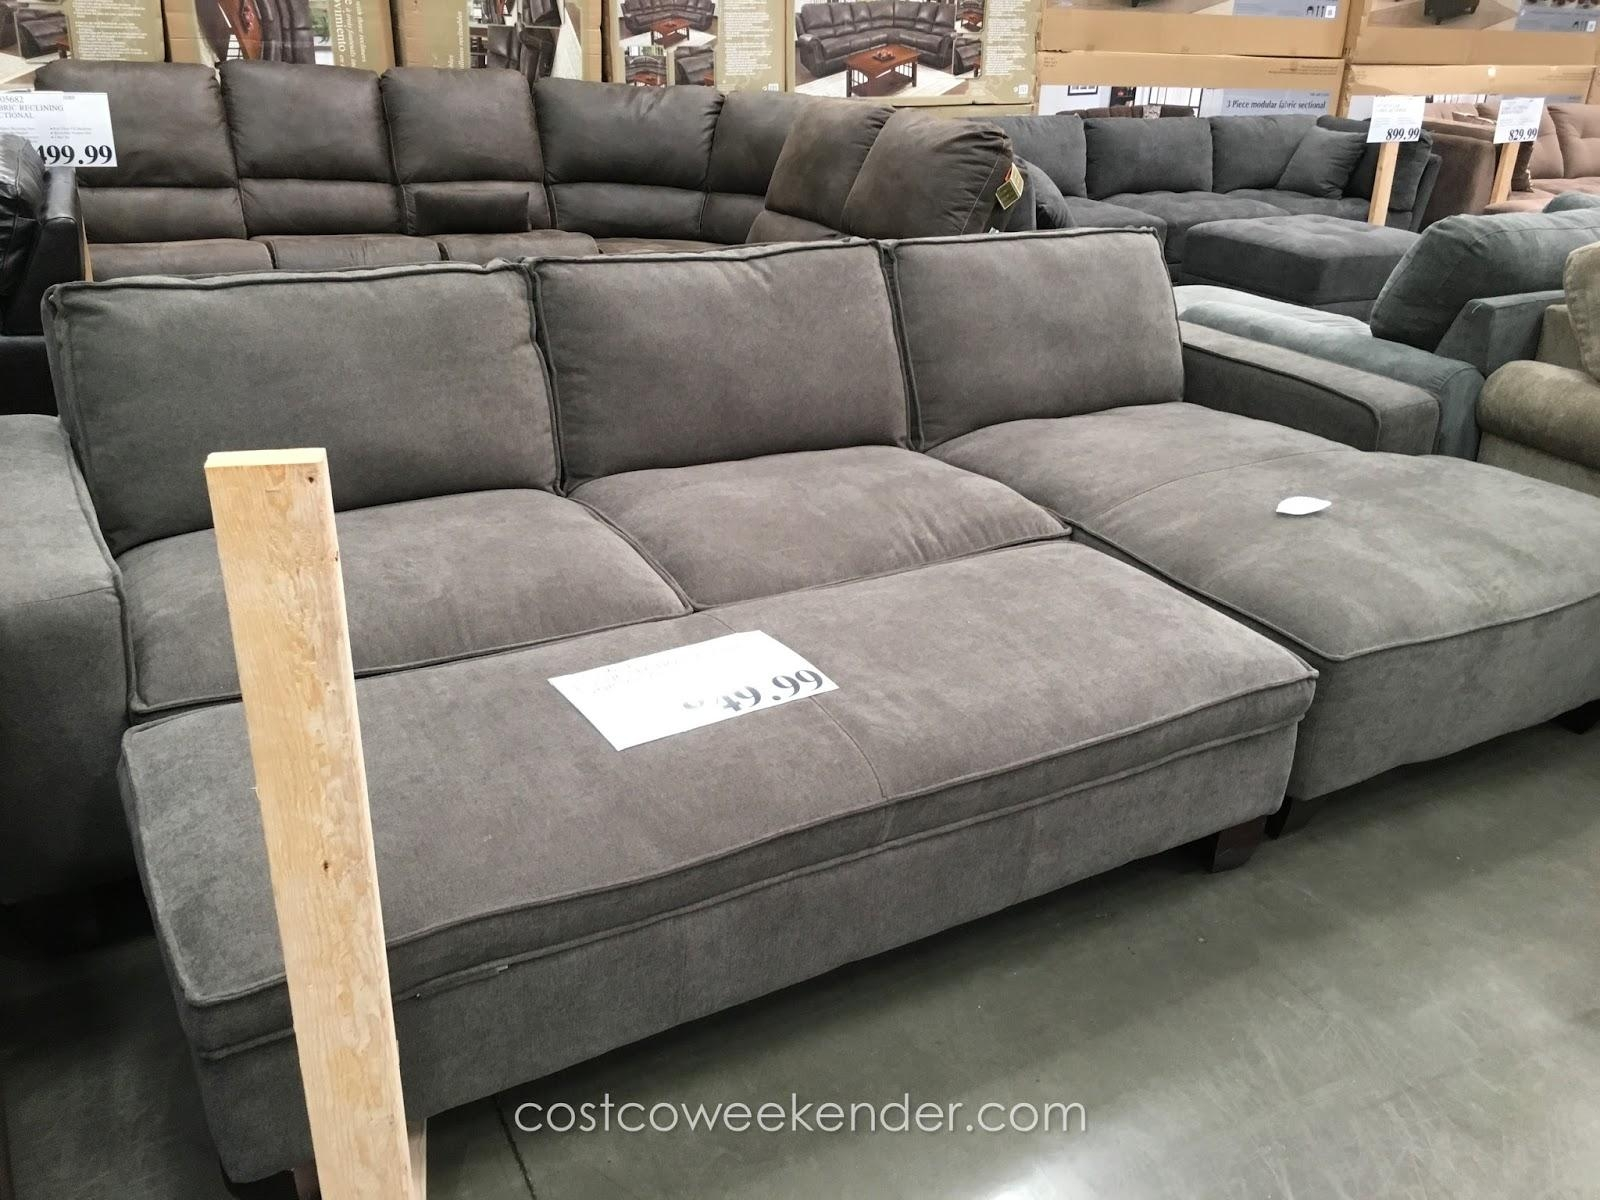 Sofas Center : Costco Recliner Sofa Sectional With Chaise Regarding Berkline Sectional Sofa (View 8 of 15)